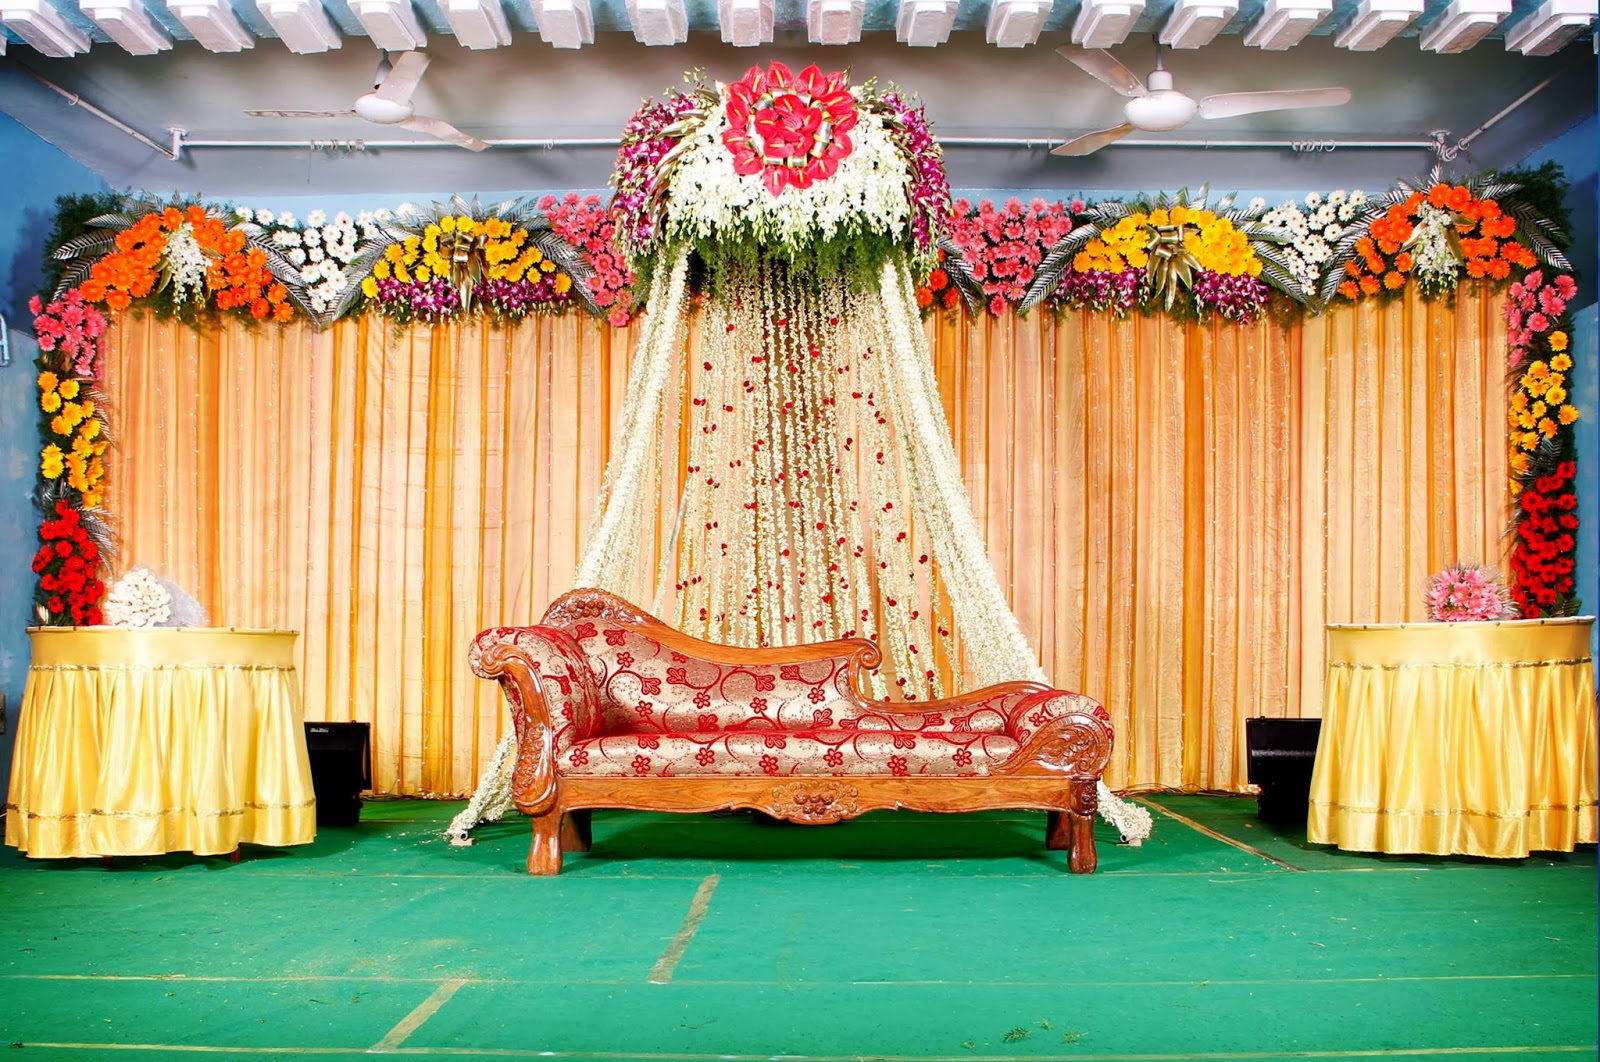 wedding stage background luckystudio4u